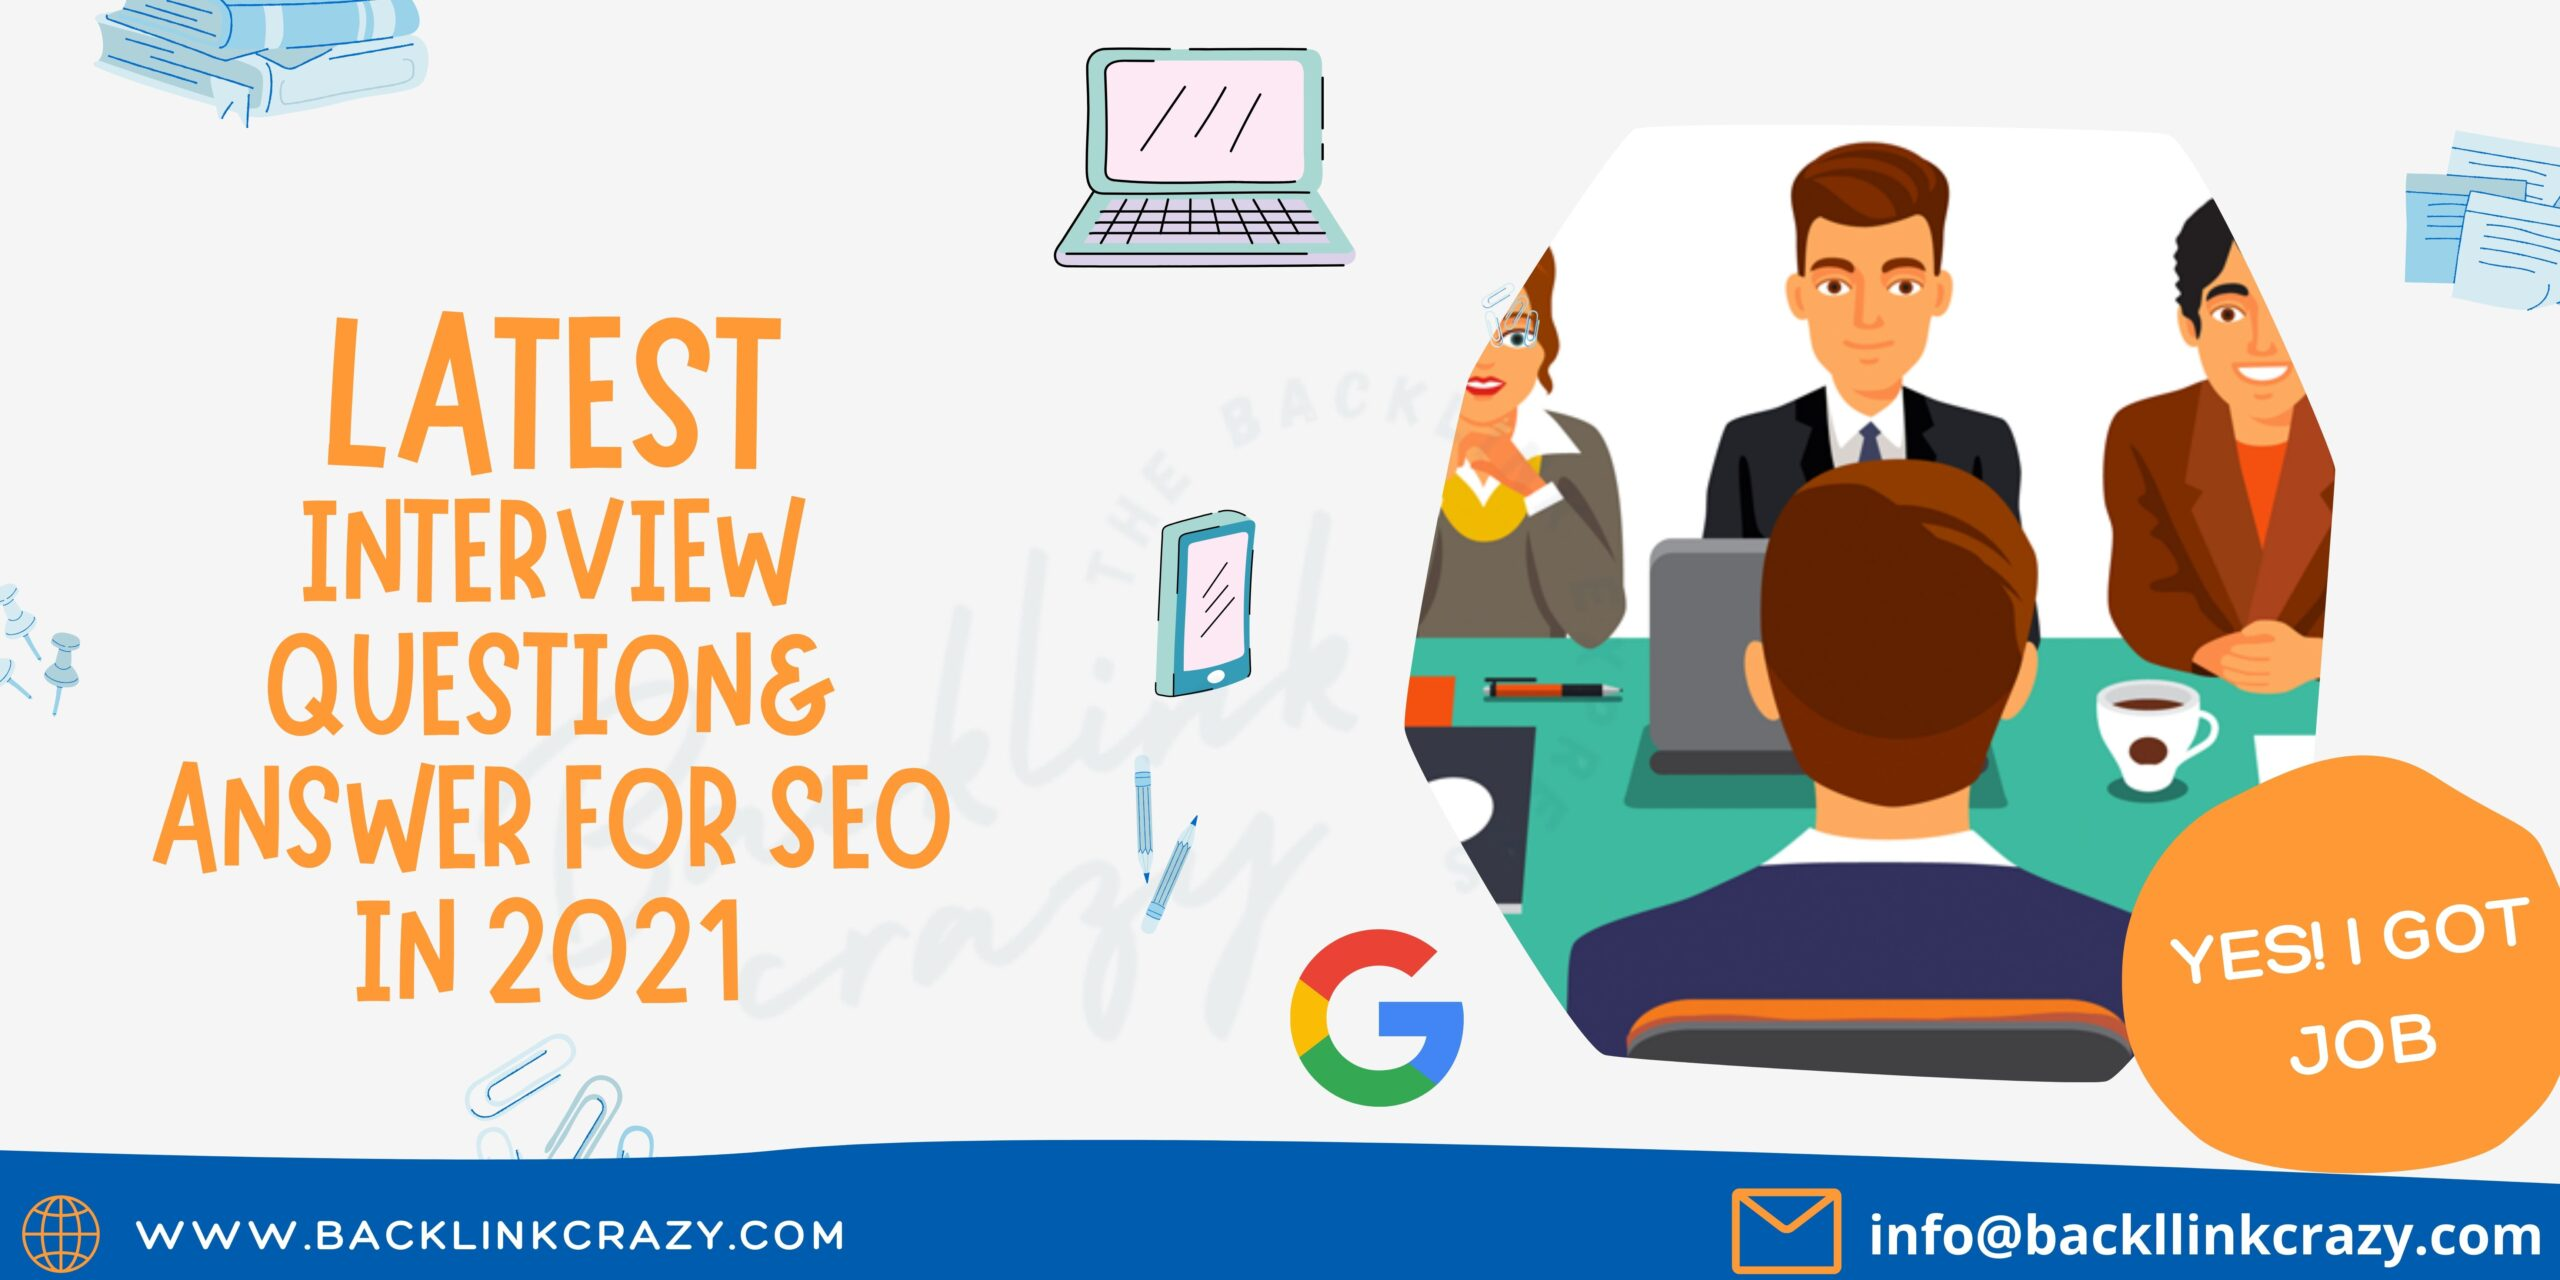 Latest Interview Question for seo